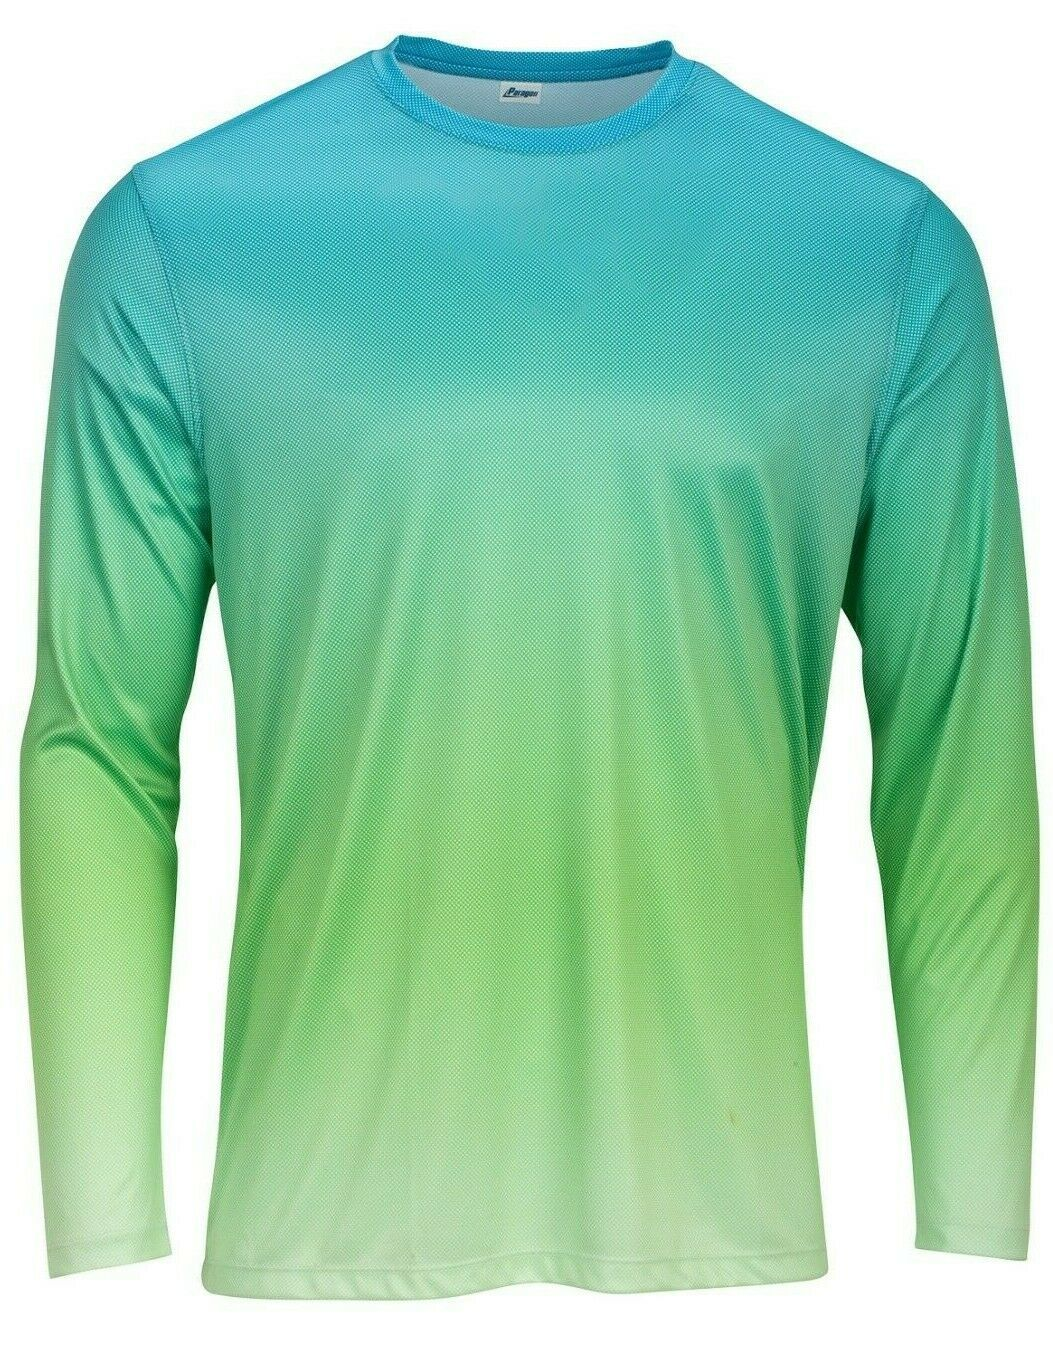 Sun Protection Long Sleeve Dri Fit Graphite Aqua Blue Lime fade shirt SPF 50+